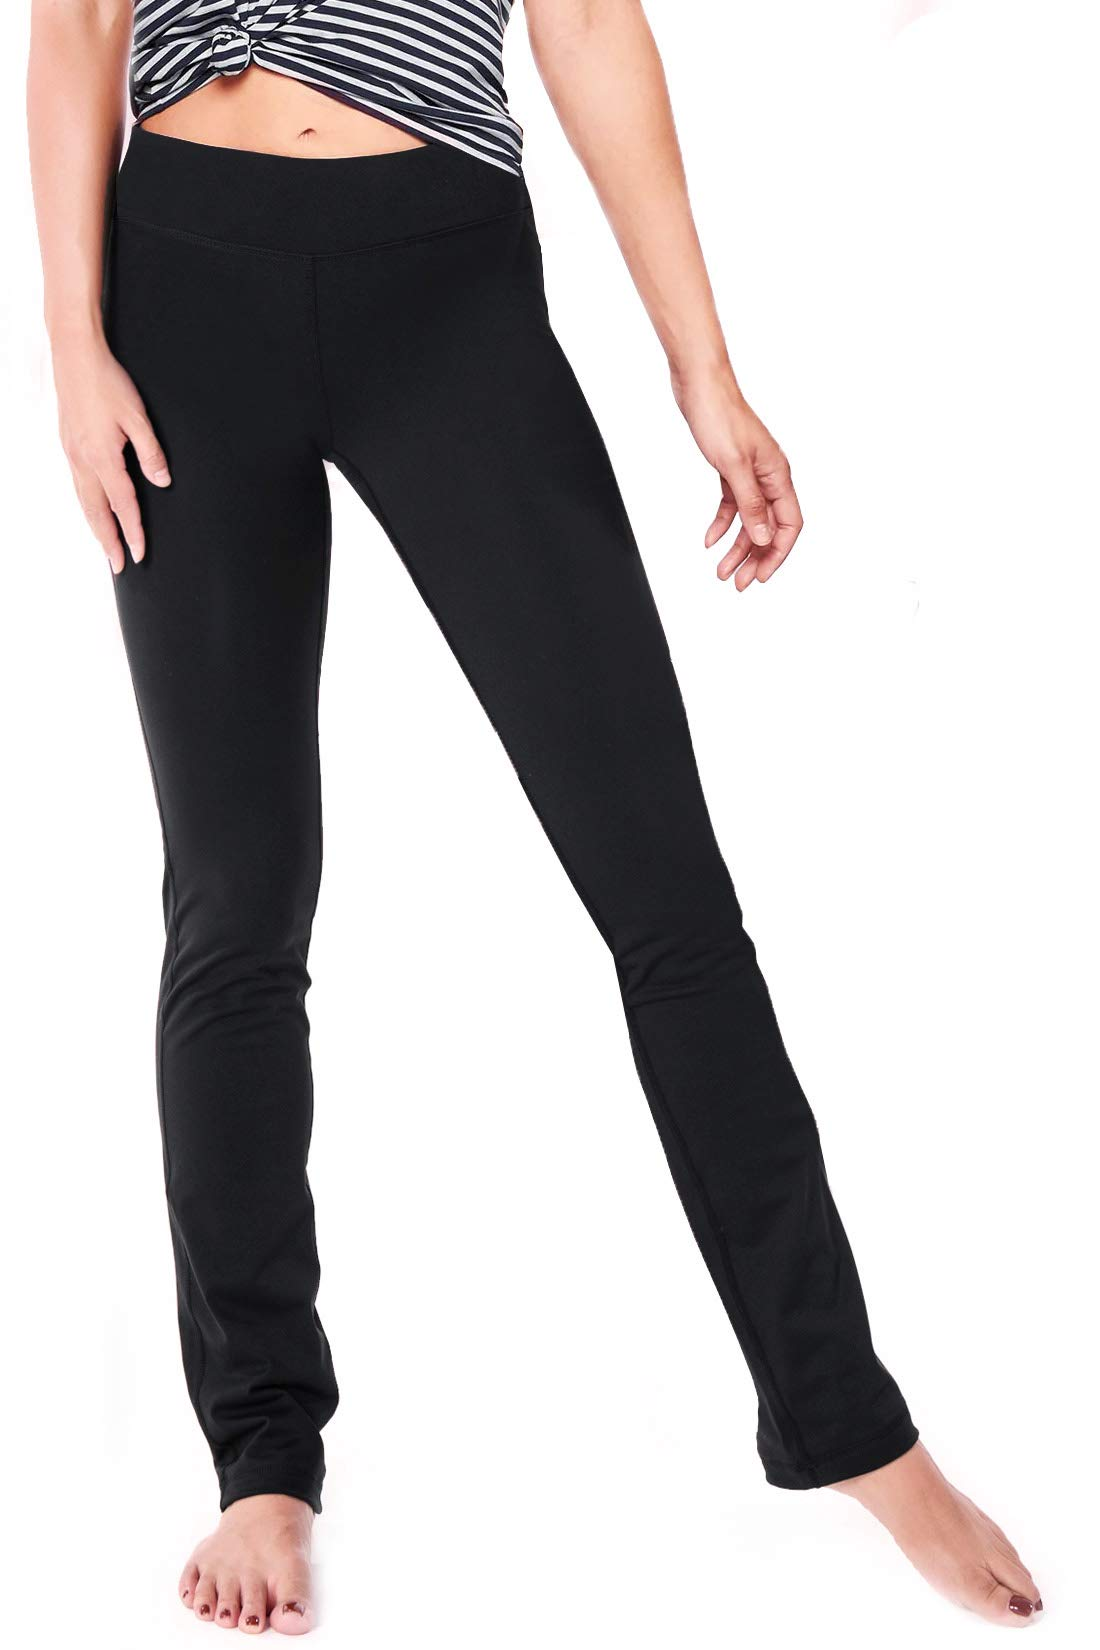 Yogipace Petite Women's 29'' inseam Straight Leg Yoga Pants Slim Fit Workout Pants Size M Black